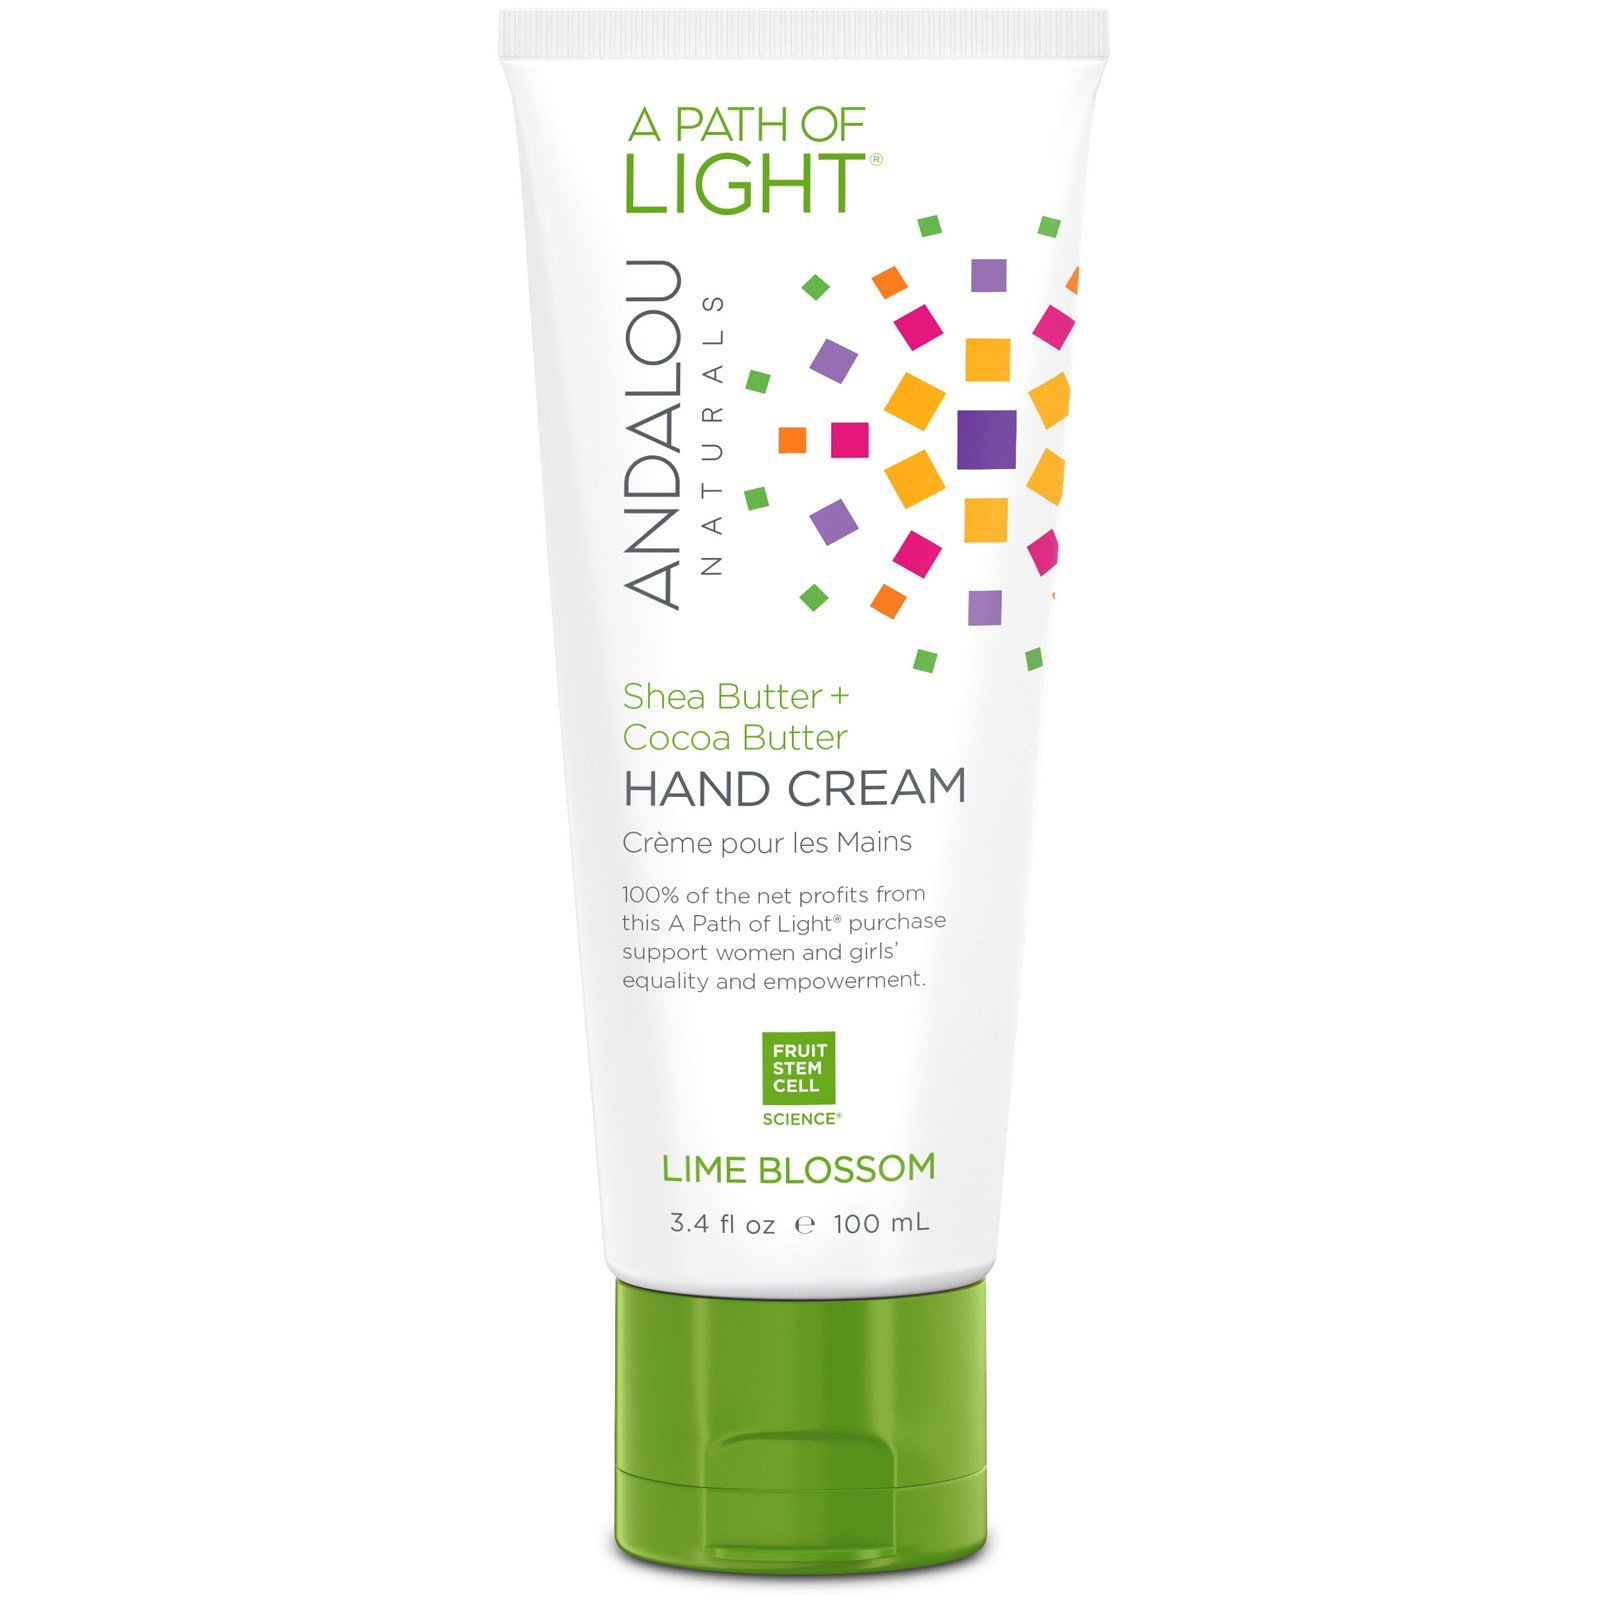 Andalou Naturals, A Path of Light, Shea Butter + Cocoa Butter Hand Cream, Lime Blossom, 3.4 fl oz (100 ml)